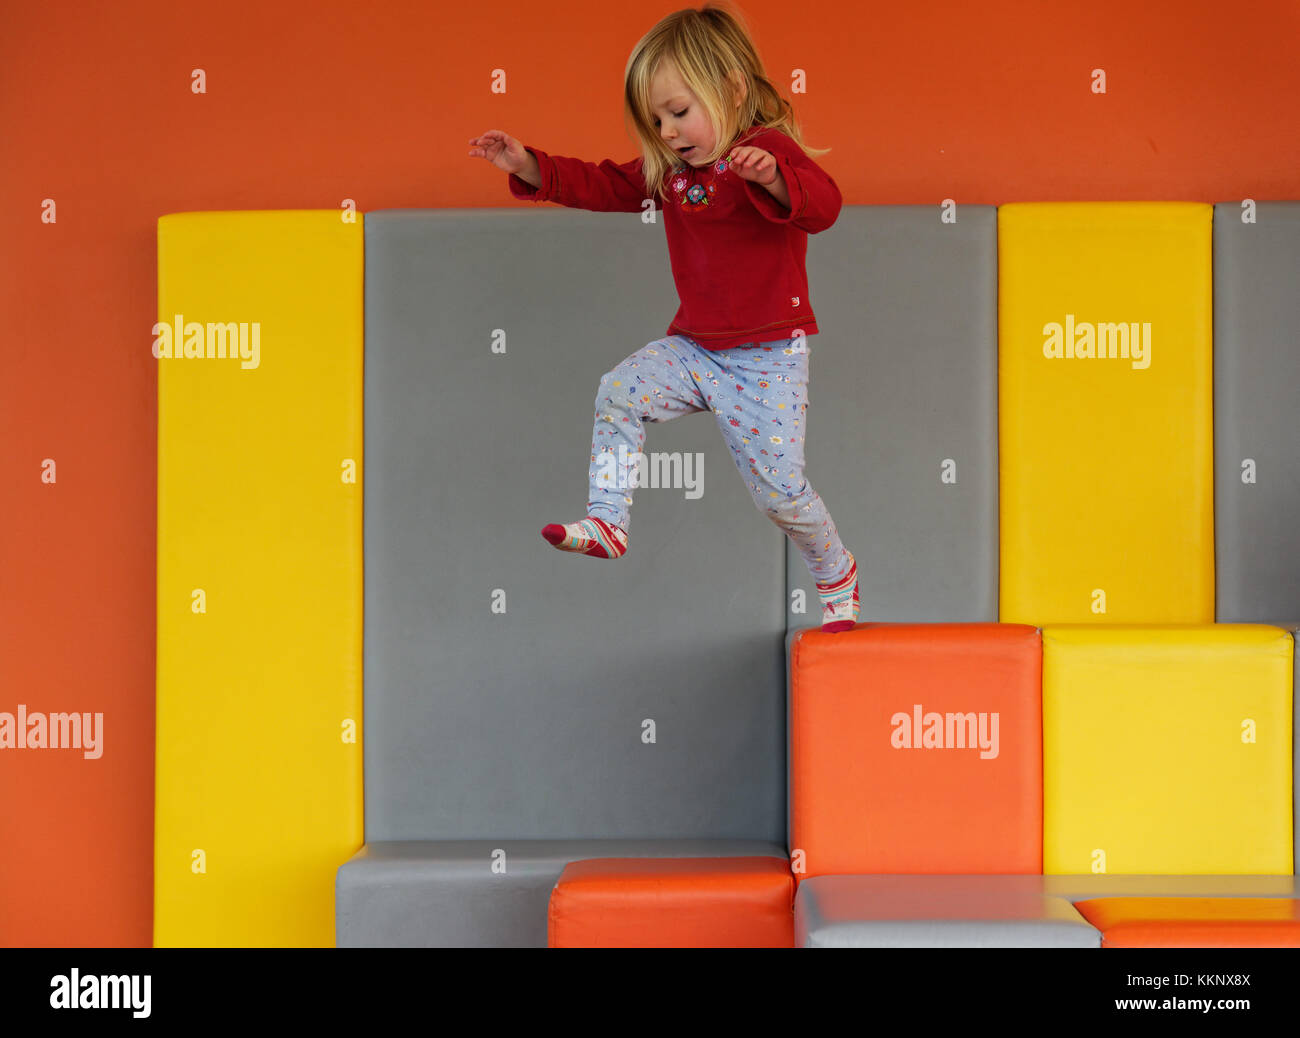 A little girl (3 yrs old) jumping in a padded play area - Stock Image